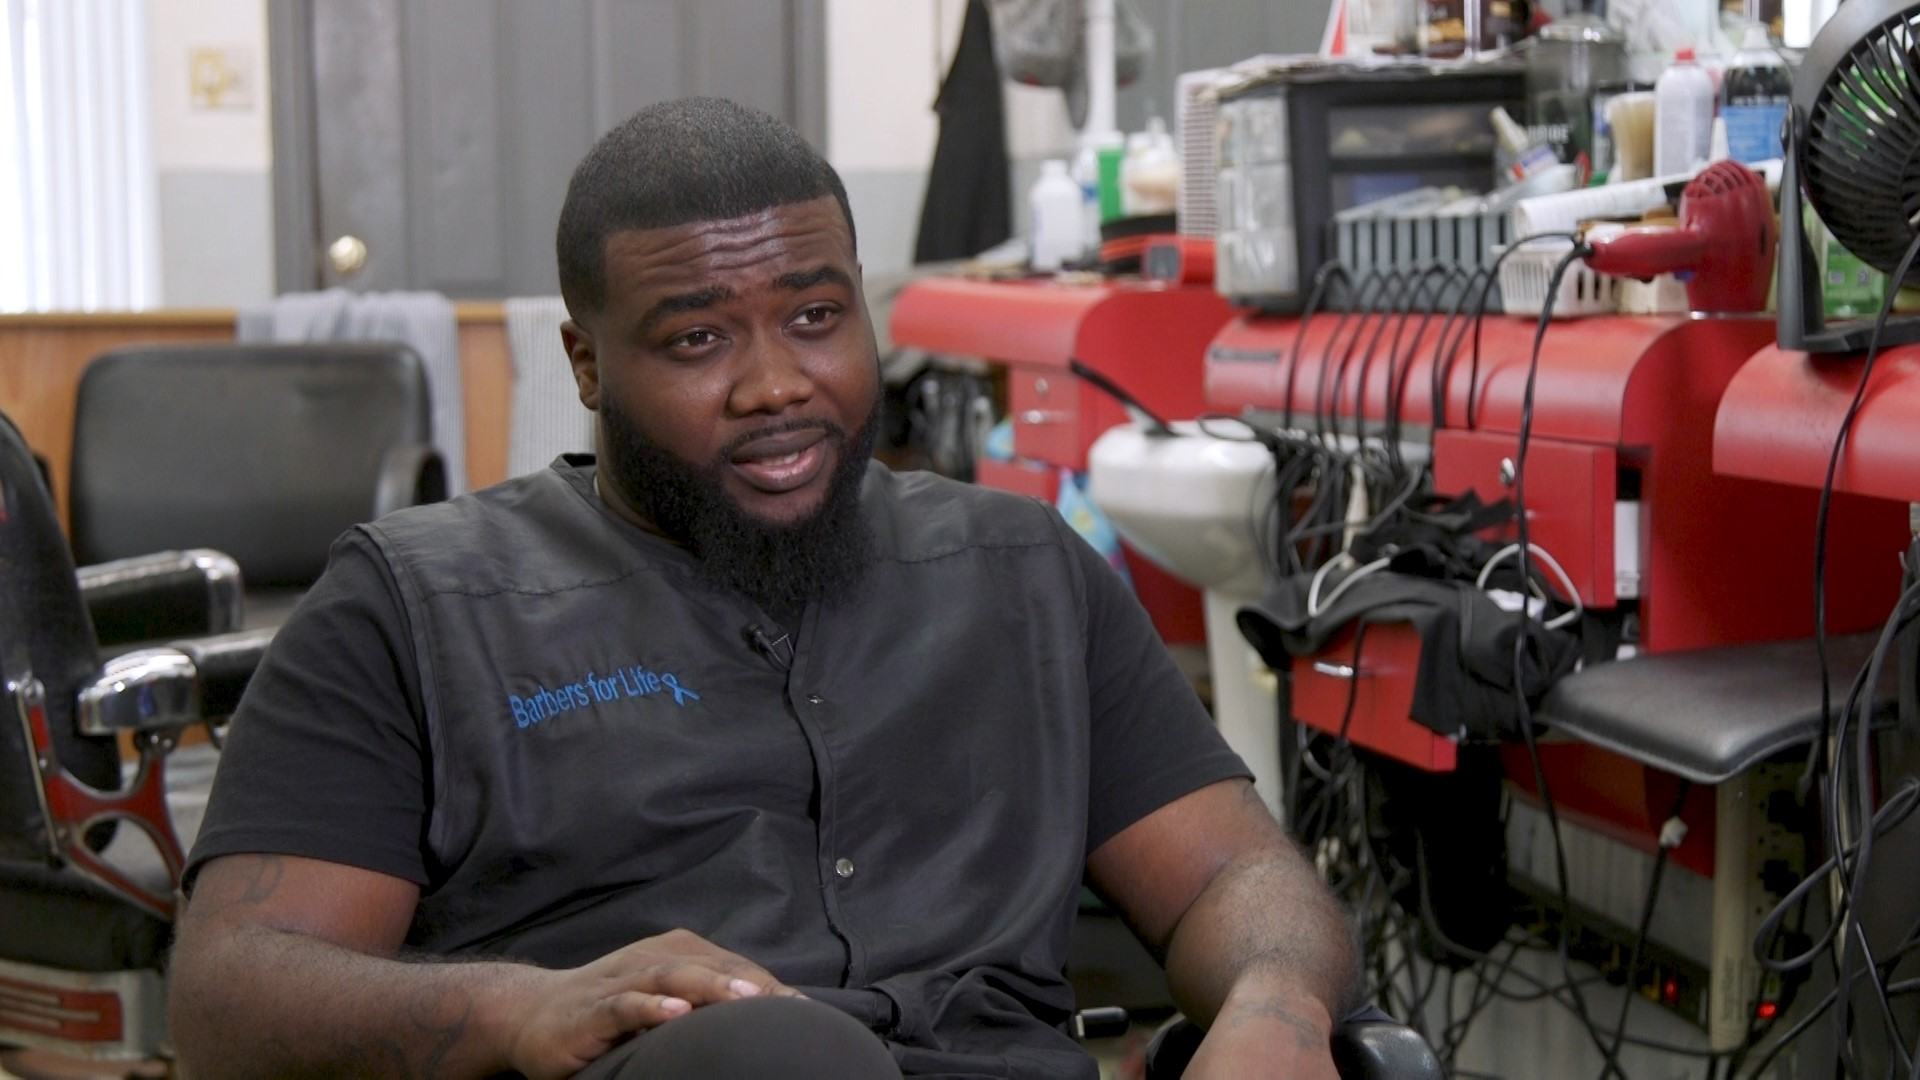 Brandon Richardson, a barber at Master's Barbershop in Rocky Mount, speaks about his participation in the Edgecombe County Barbershop Partnership.